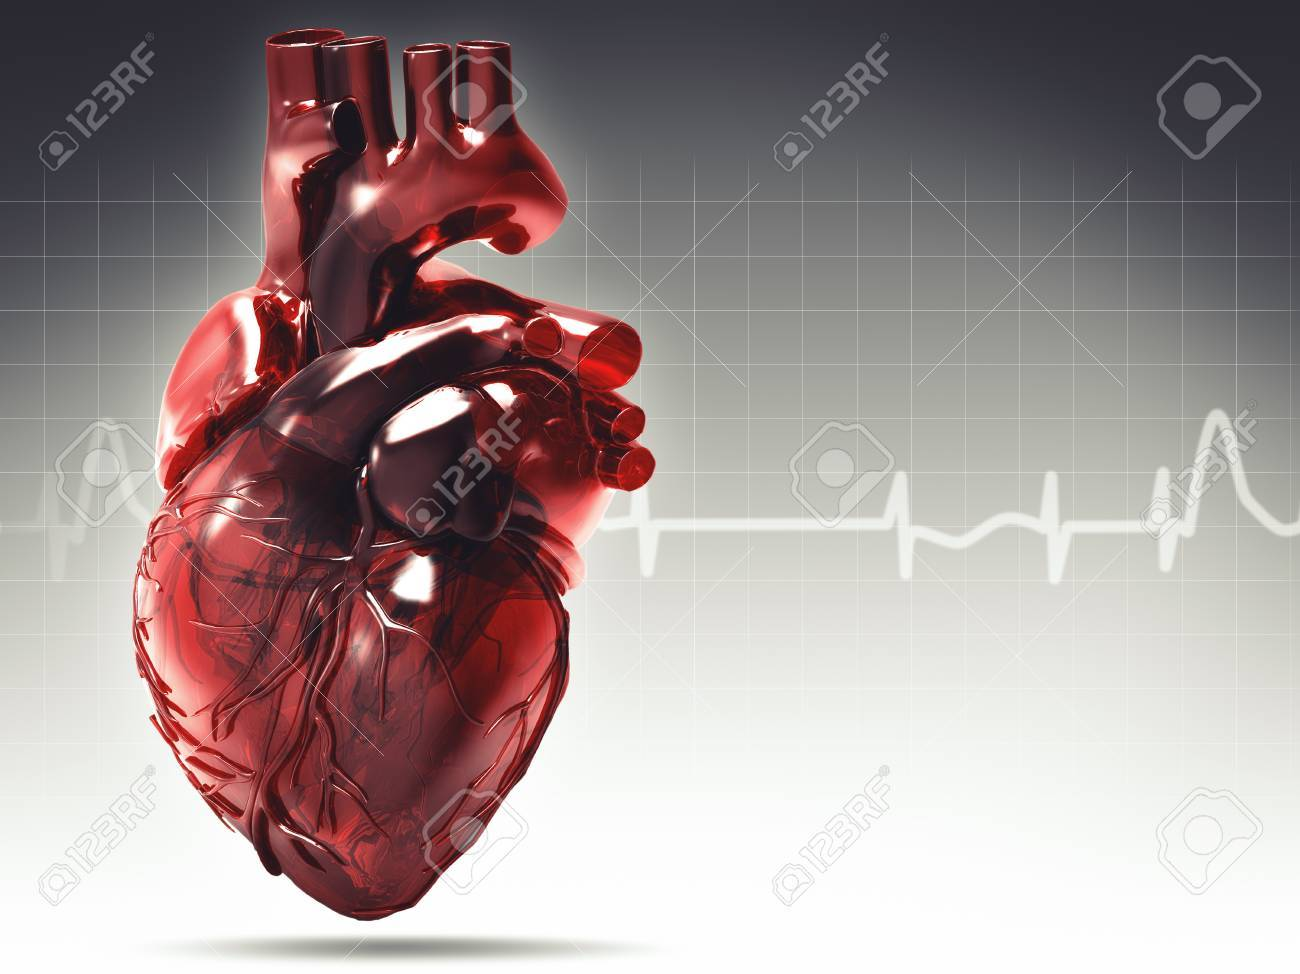 Health and medical background Stock Photo - 25204102